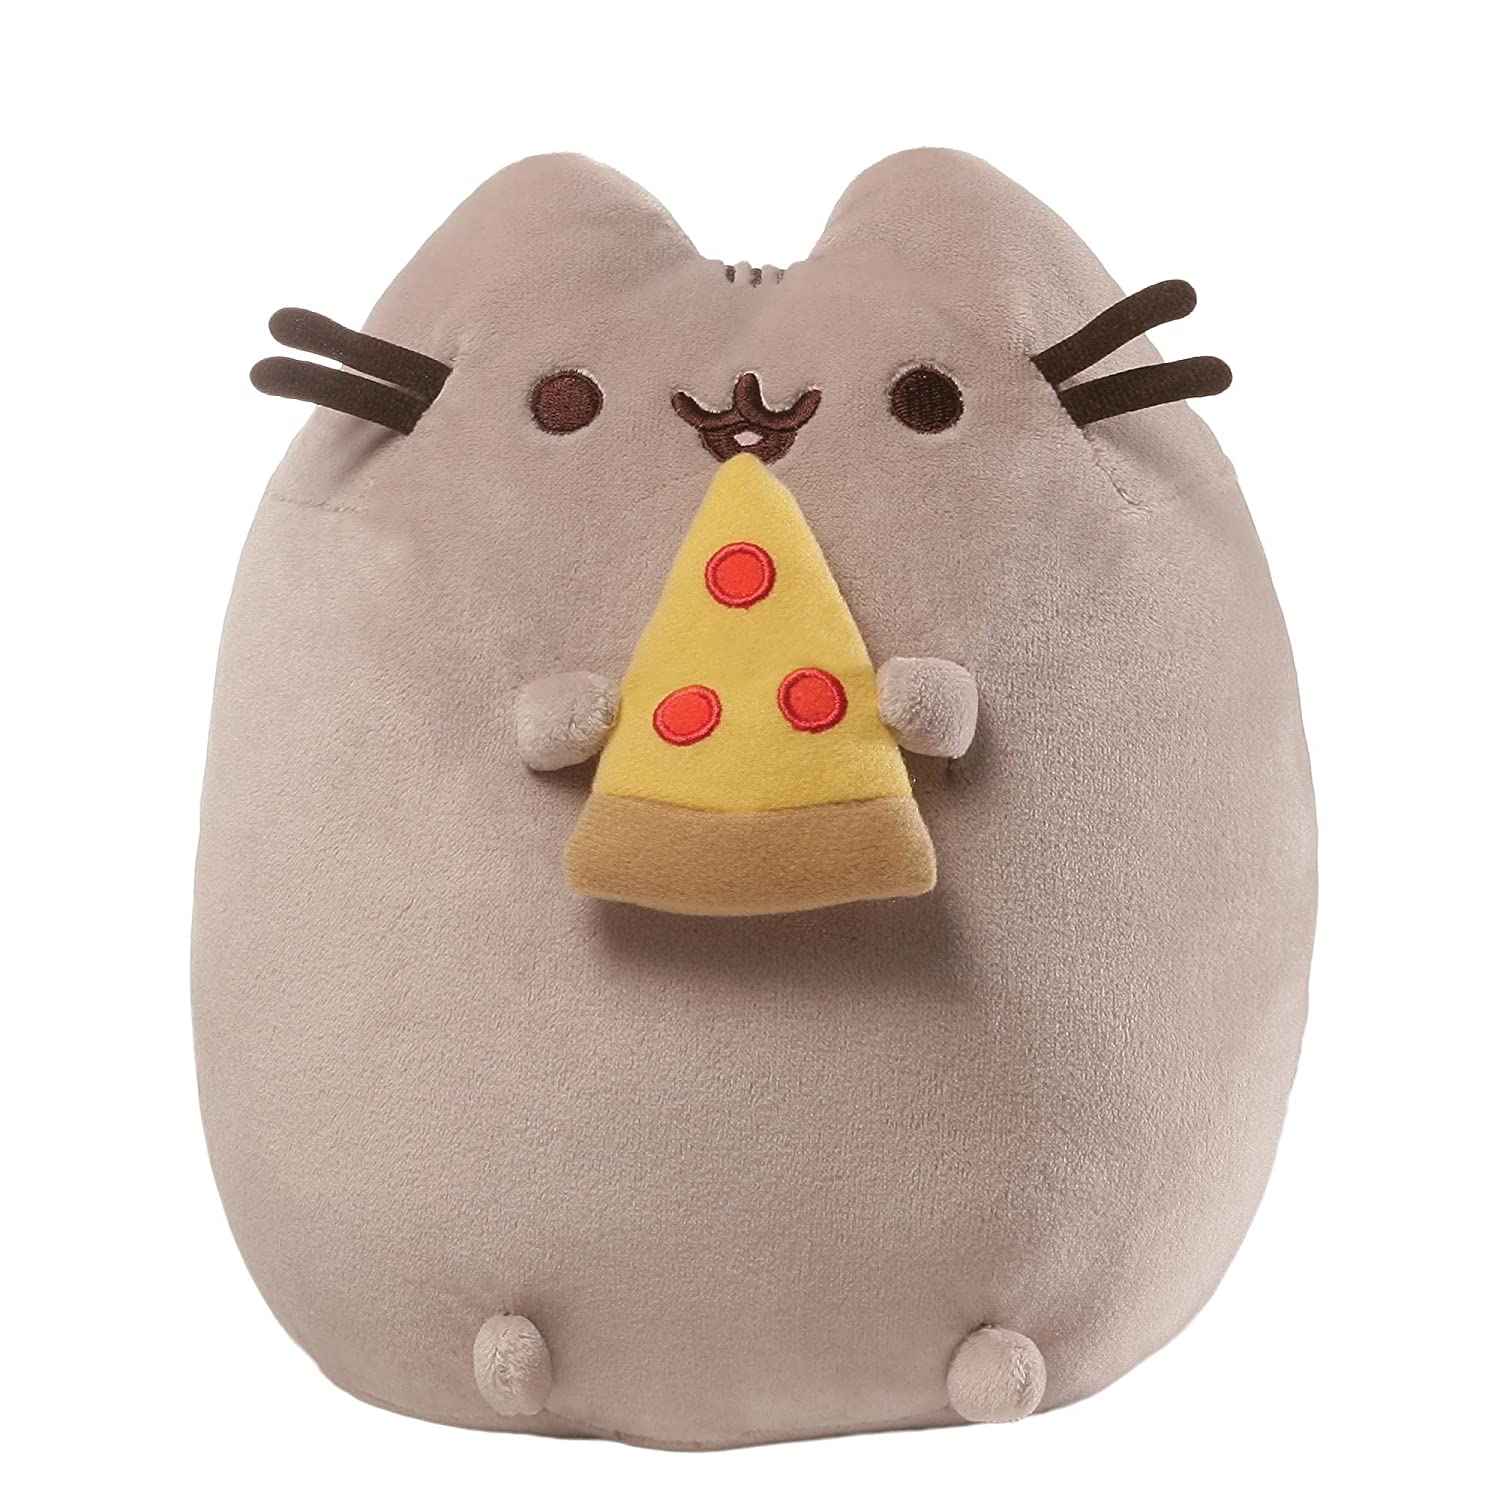 GUND Pusheen Snackables Potato Chip Cat Plush Stuffed Animal, Gray, 9.5 9.5 4058948